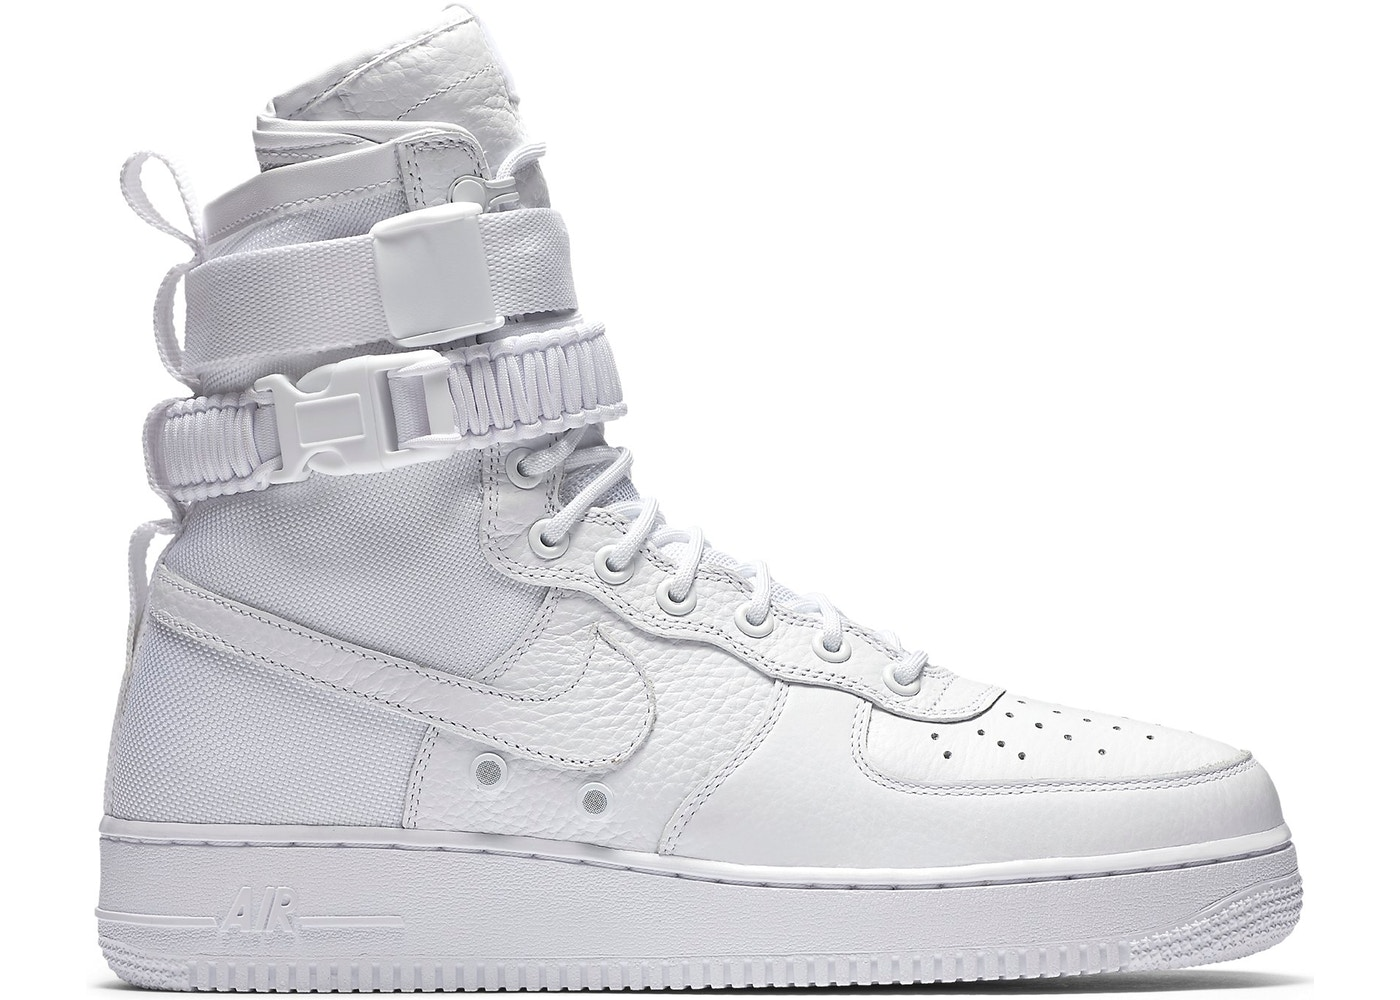 nike sf air force 1 high white 2017 903270 100. Black Bedroom Furniture Sets. Home Design Ideas